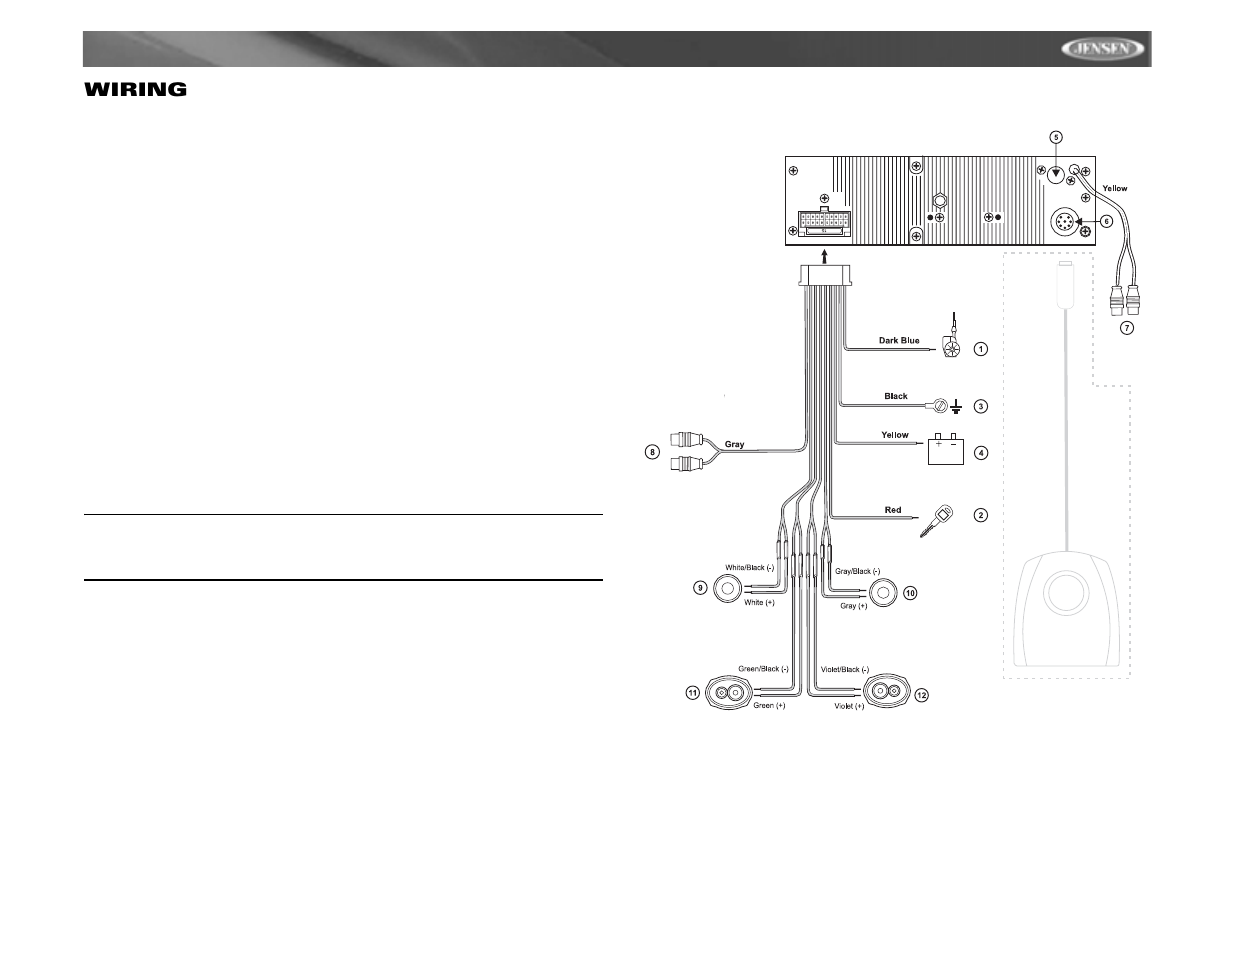 Jensen Din 8 Pin Free Download Connector Diagram Wiring Schematic Mp6211 User Manual Page 7 52 Diaphragm Audio At